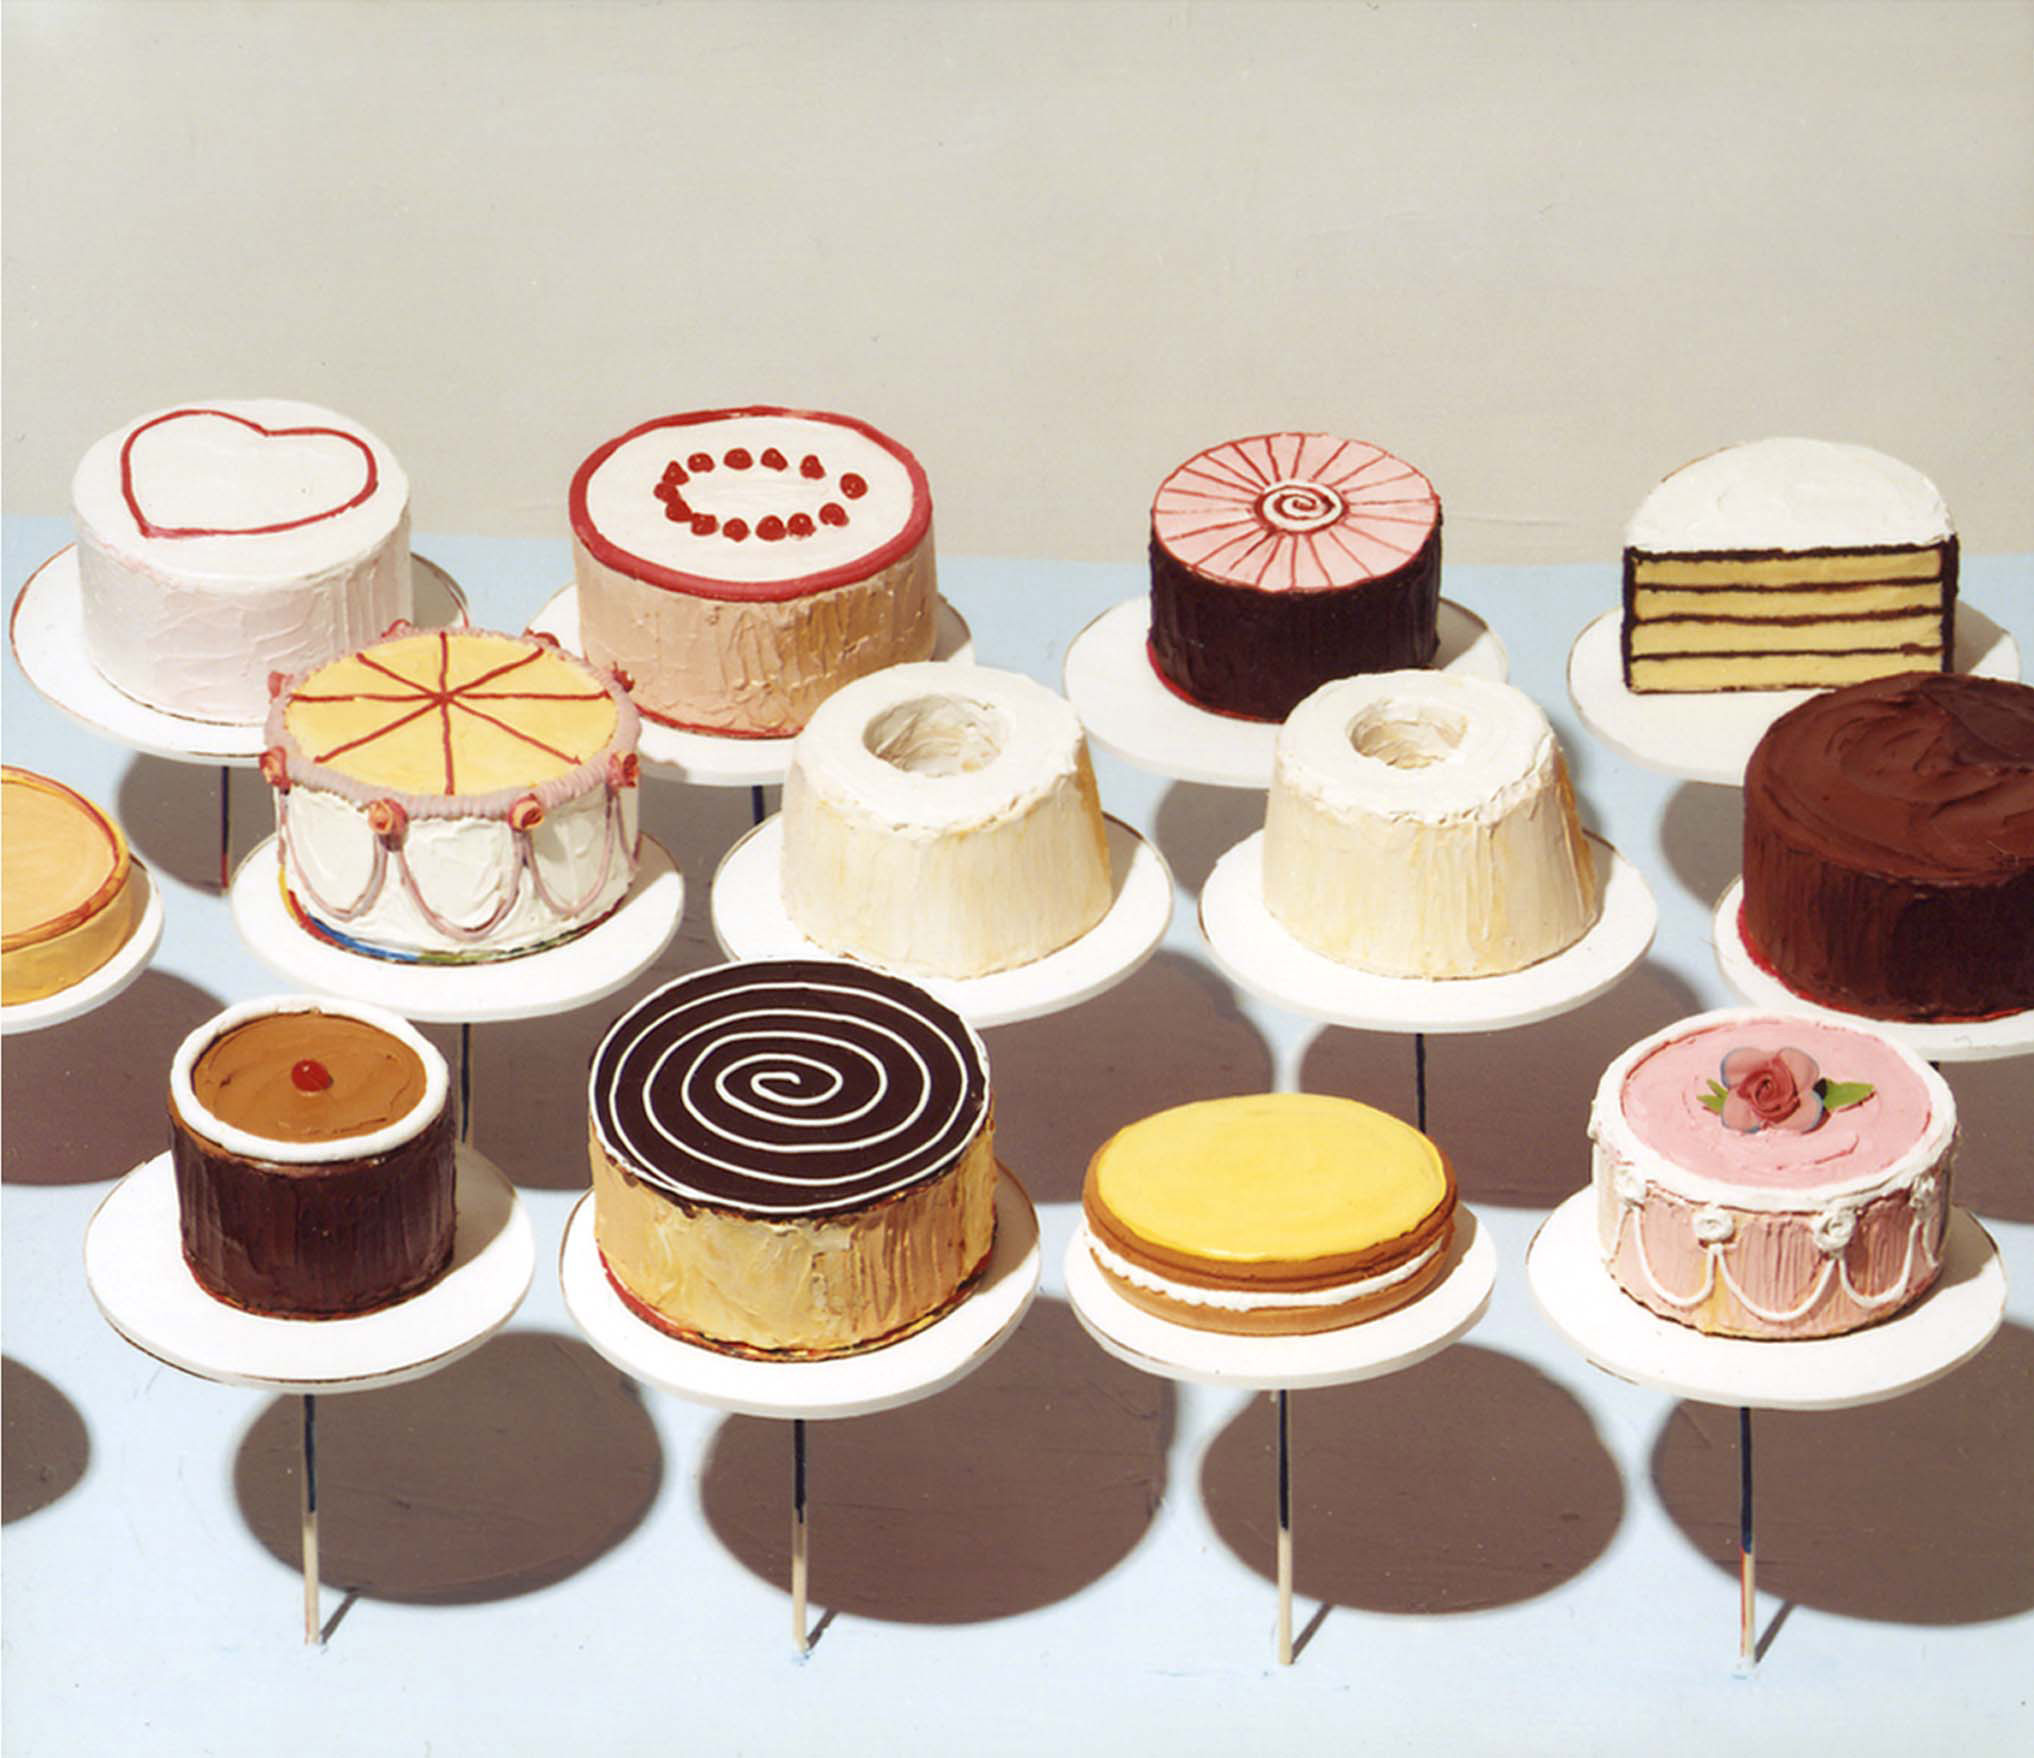 Cake Artist Cakes : Wayne Thiebaud Cakes 1963 oil on canvas